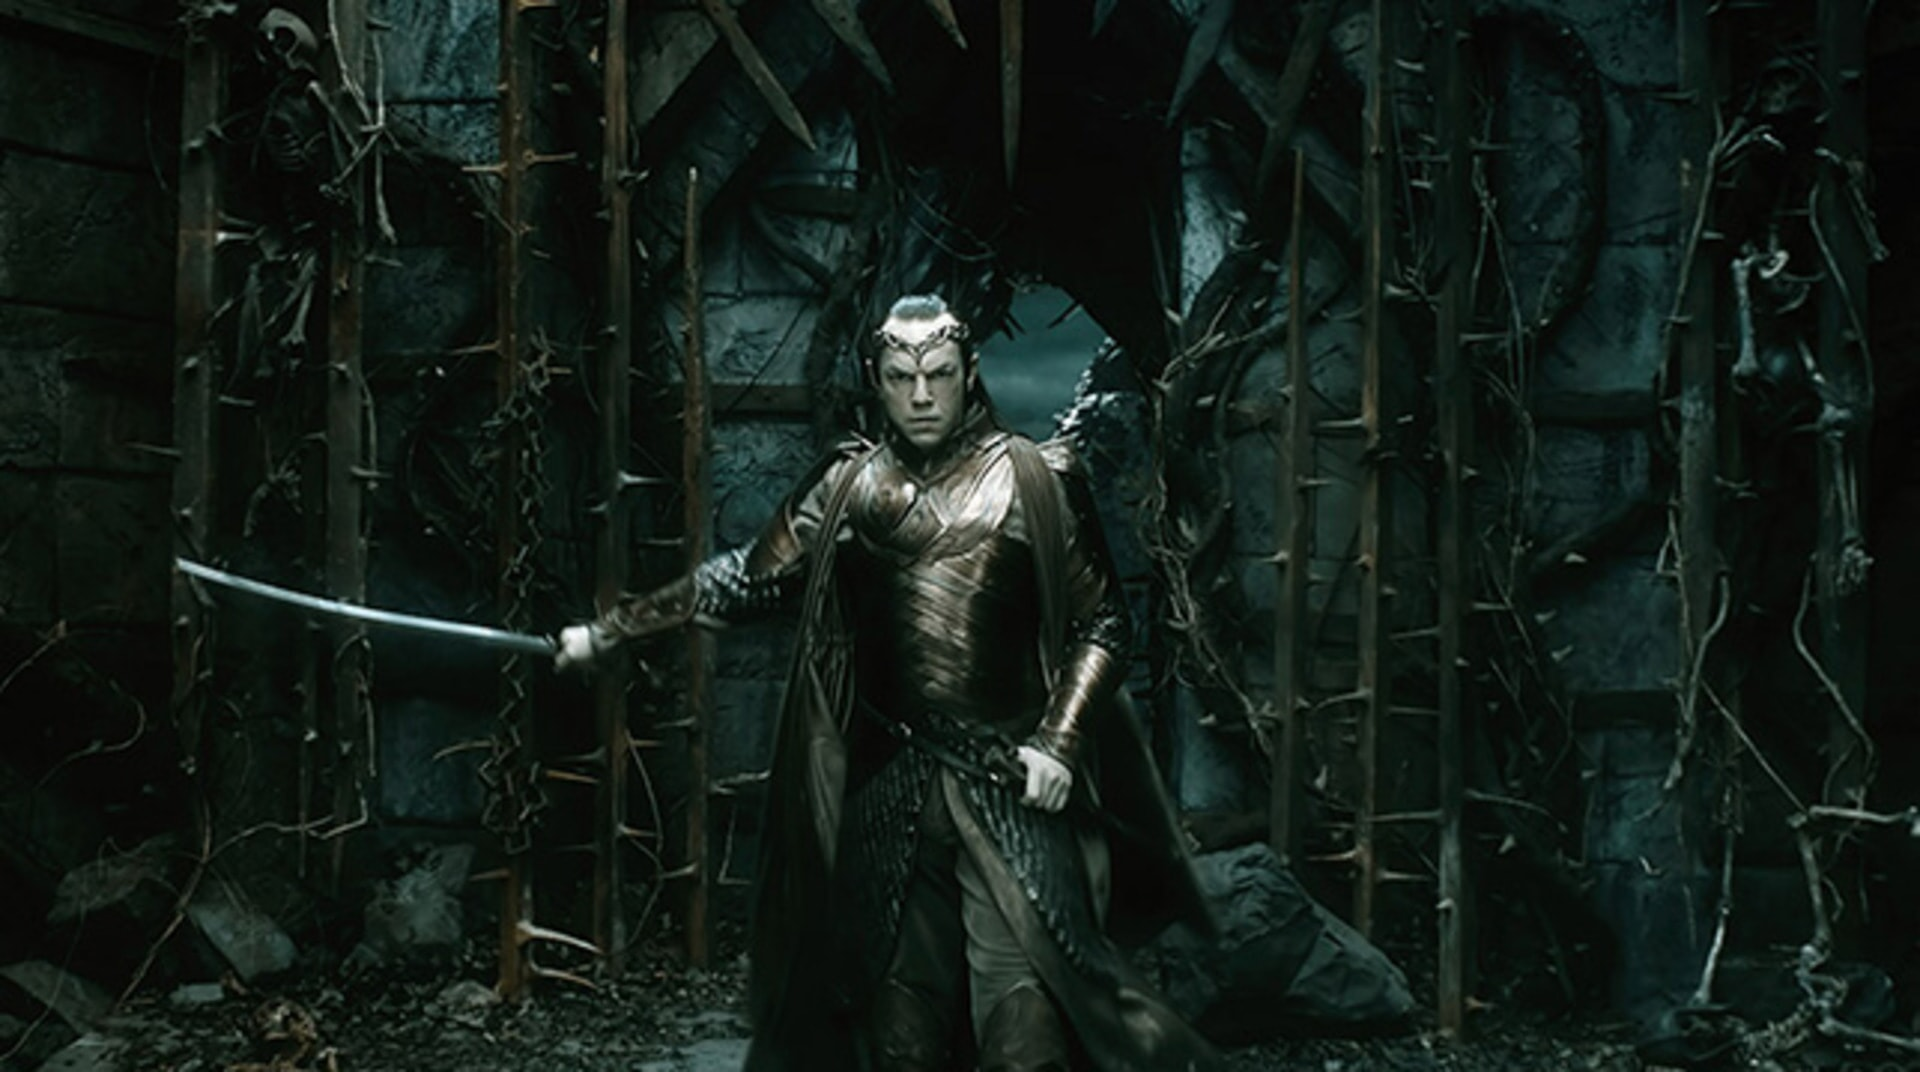 The Hobbit: The Battle of the Five Armies - Image 45